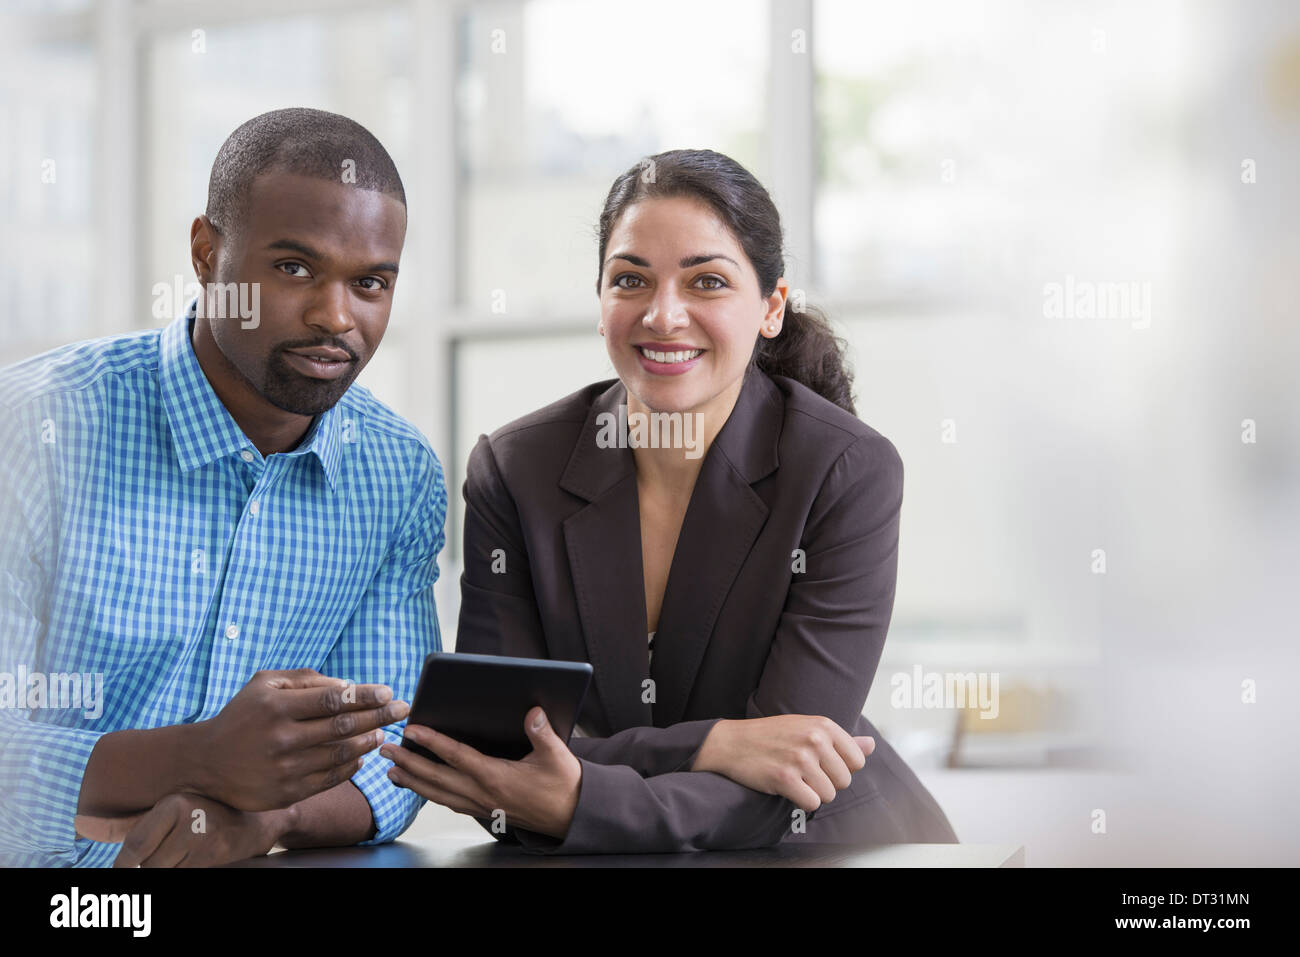 Professionals in the office A light and airy place of work Two people sitting at a desk using a digital tablet Work colleagues - Stock Image